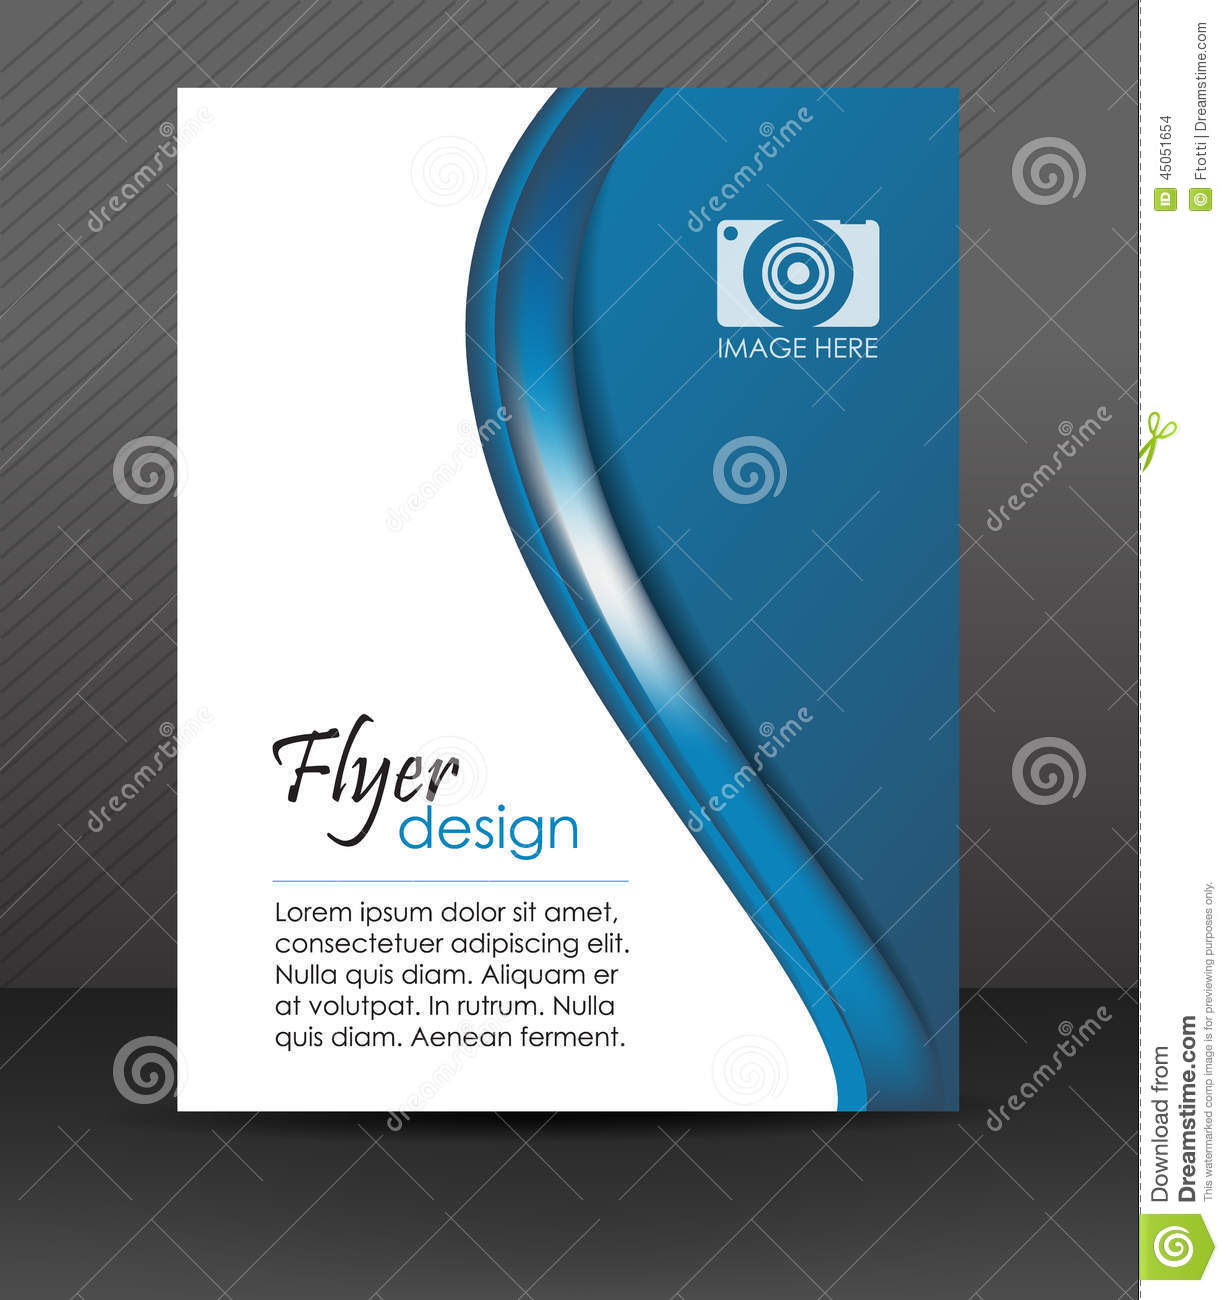 professional business flyer template or corporate banner cover professional business flyer template or corporate banner cover design